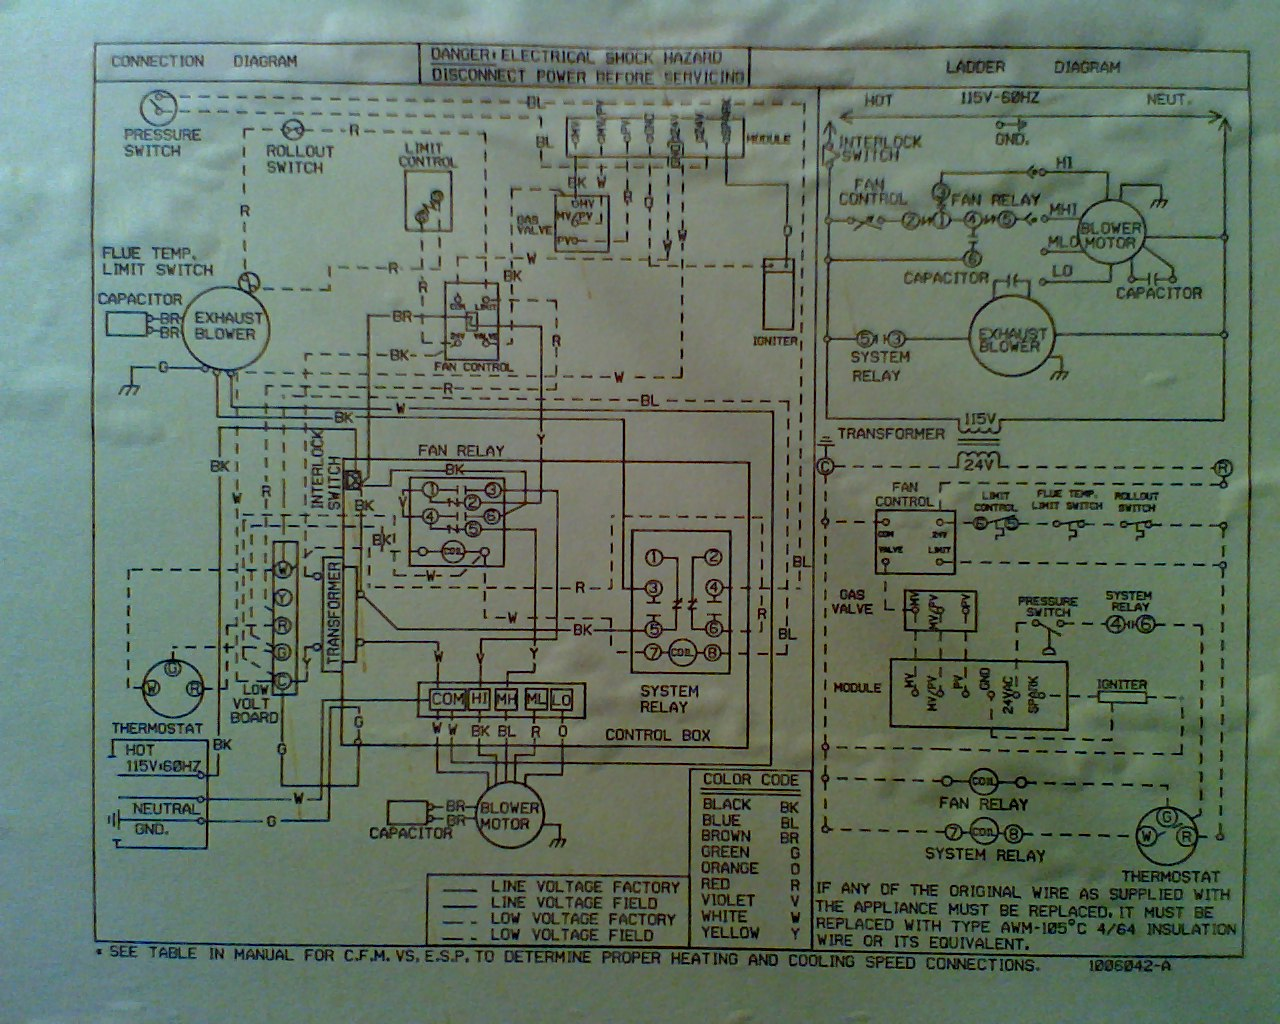 2009 11 20_231603_1120091711a wiring diagram for tempstar 2200 32 wiring diagram images wiring